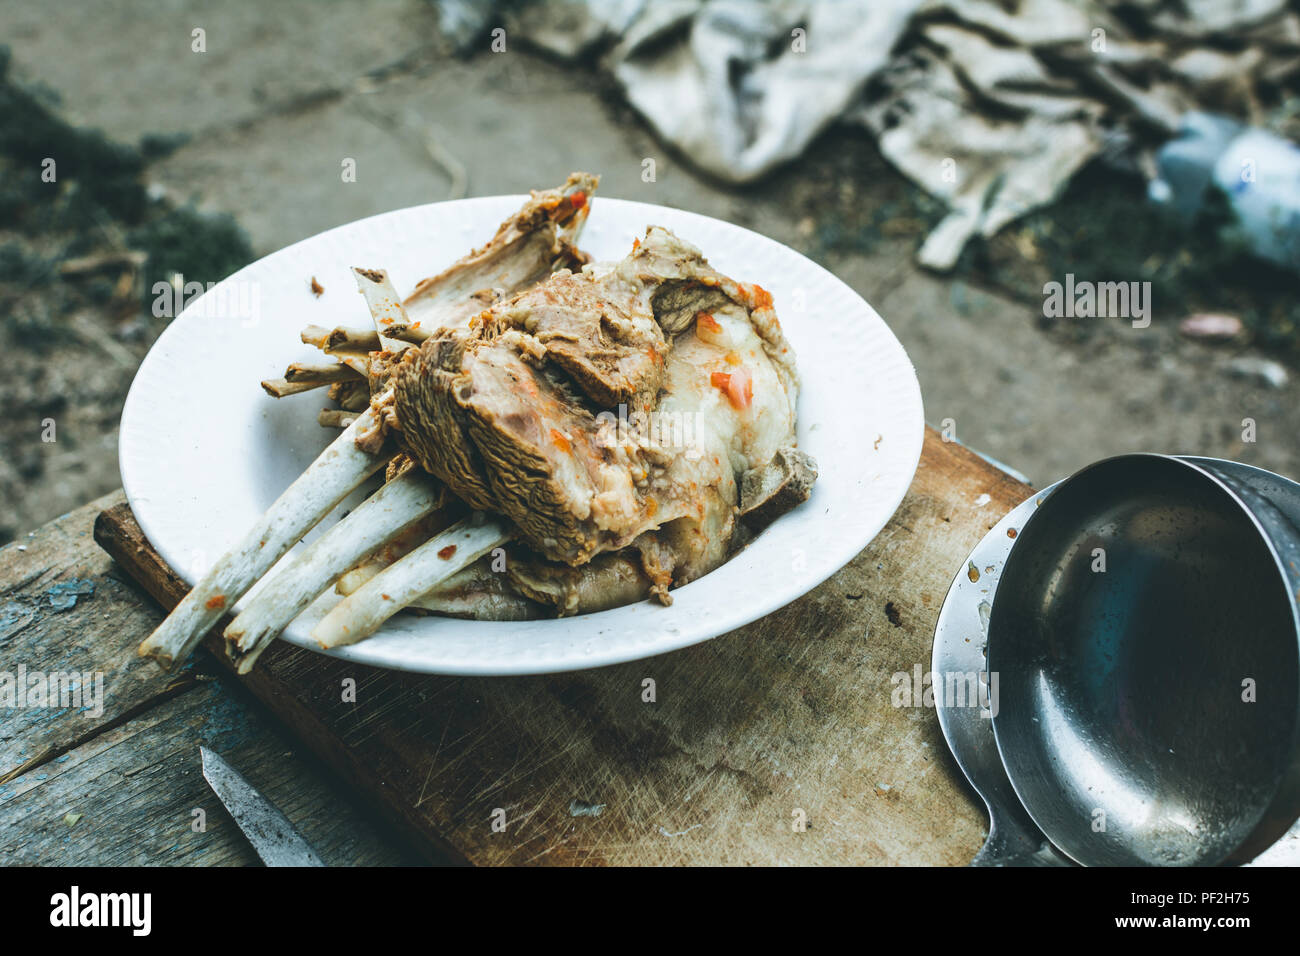 Boiled lamb in a plate on a wooden board - Stock Image